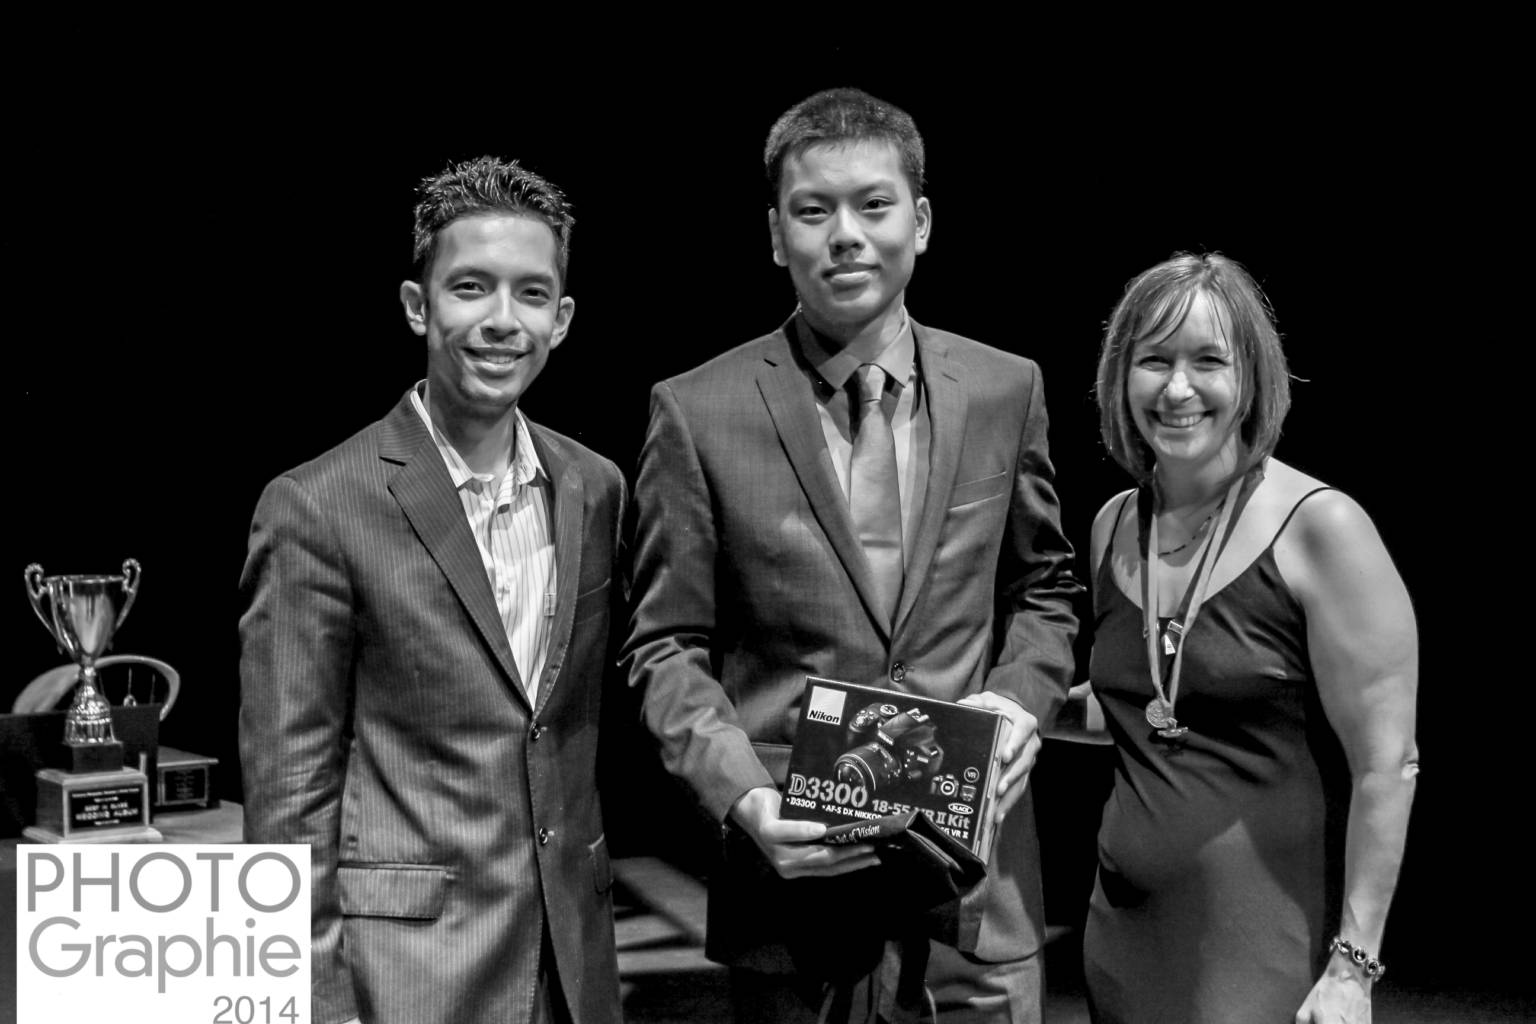 Liu Receives His Youth Contest 2014 Prize